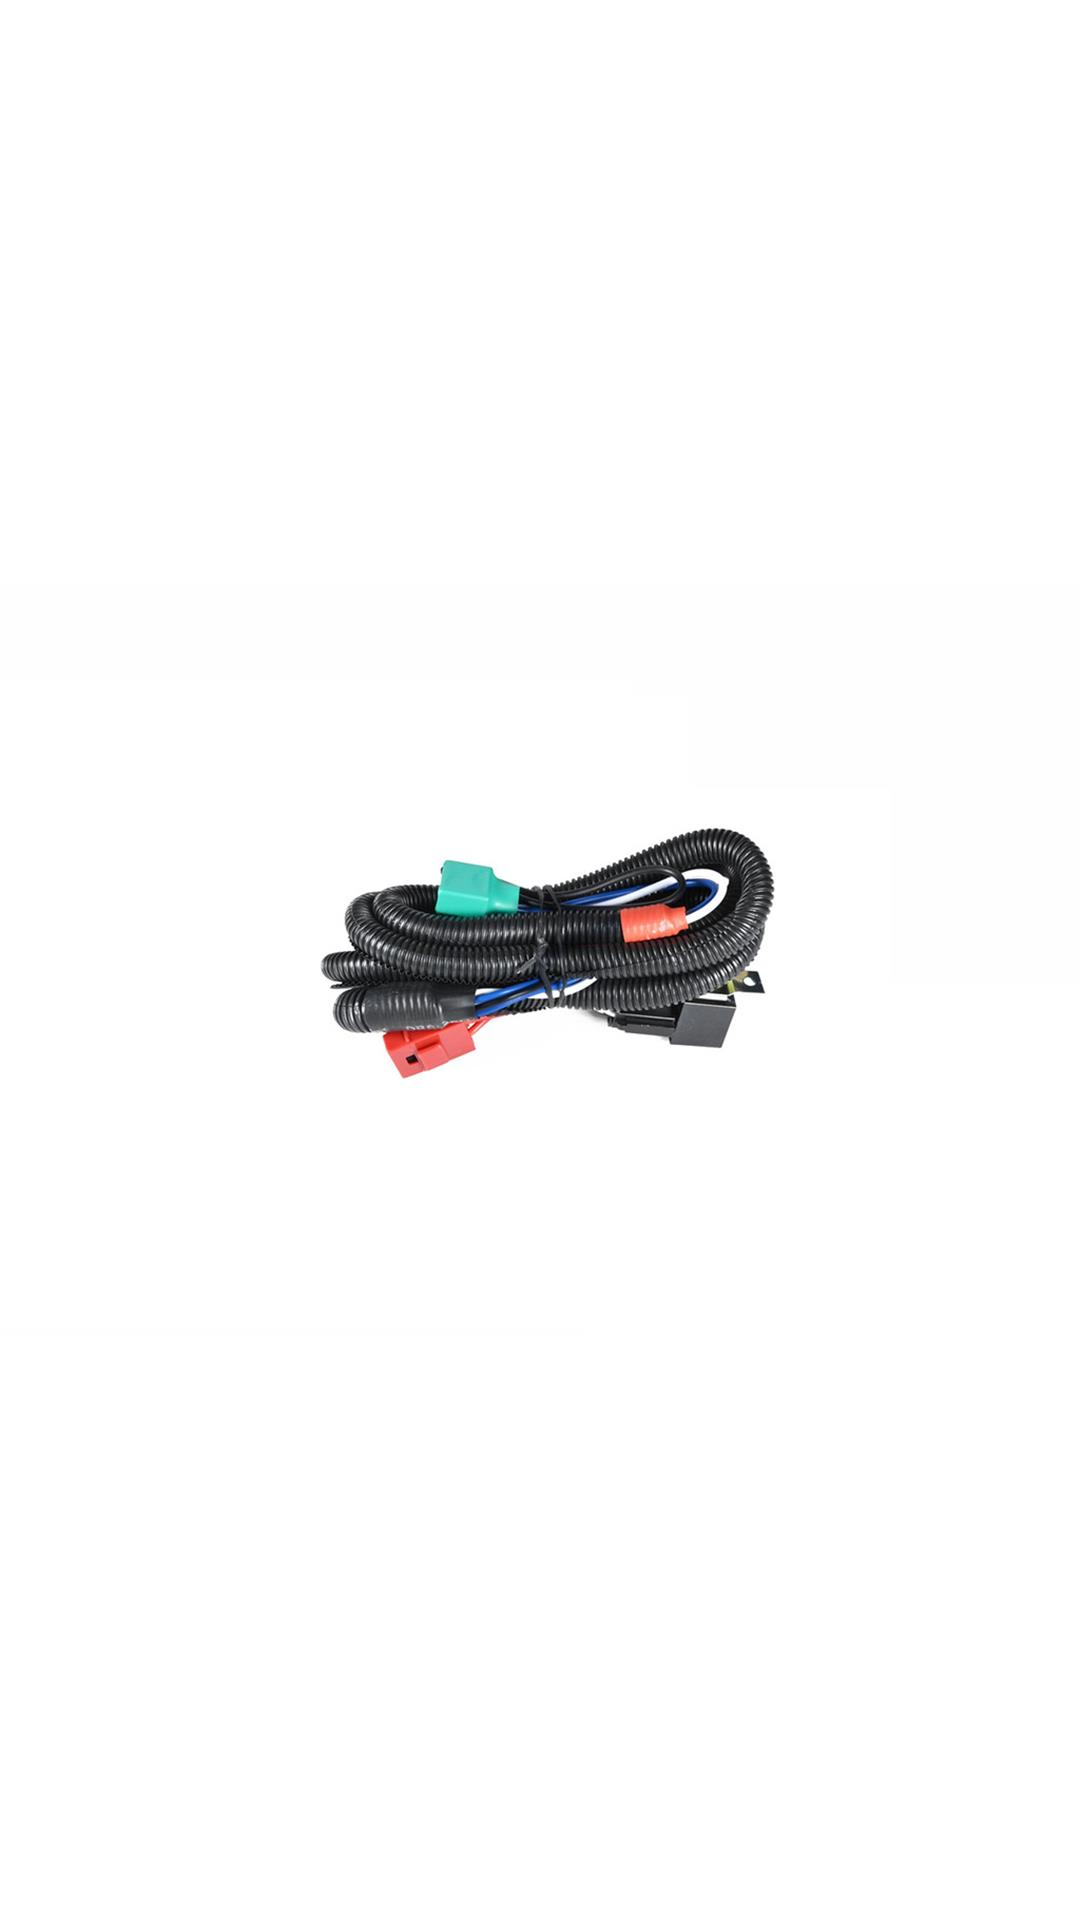 buy speedwav car h4 headlight relay wiring harness ford figo aspire 96  nissan maxima headlight wiring